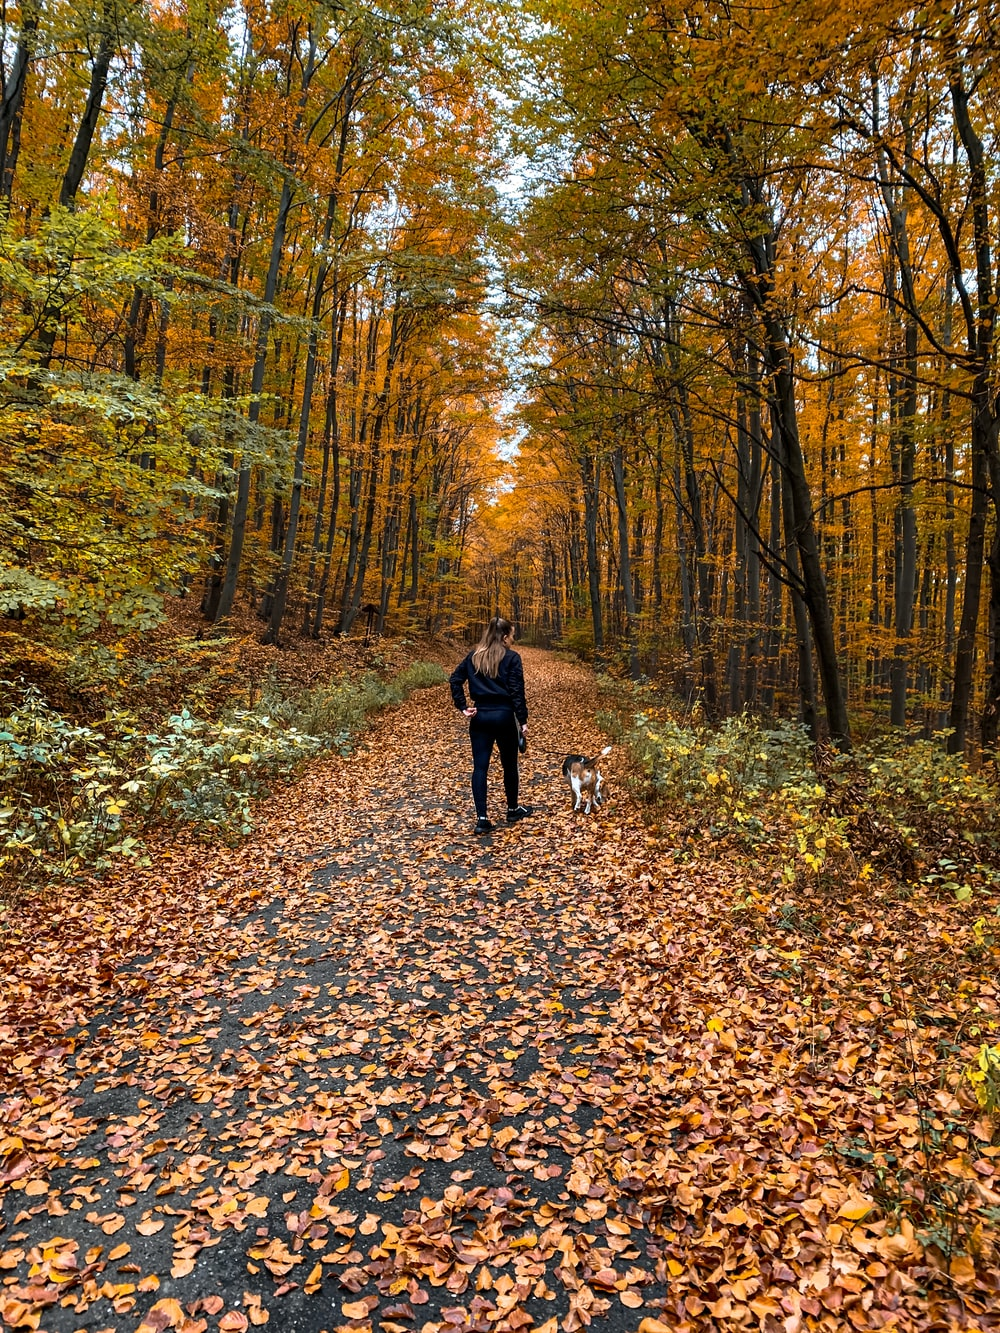 person in black jacket and black pants walking on brown dried leaves on ground